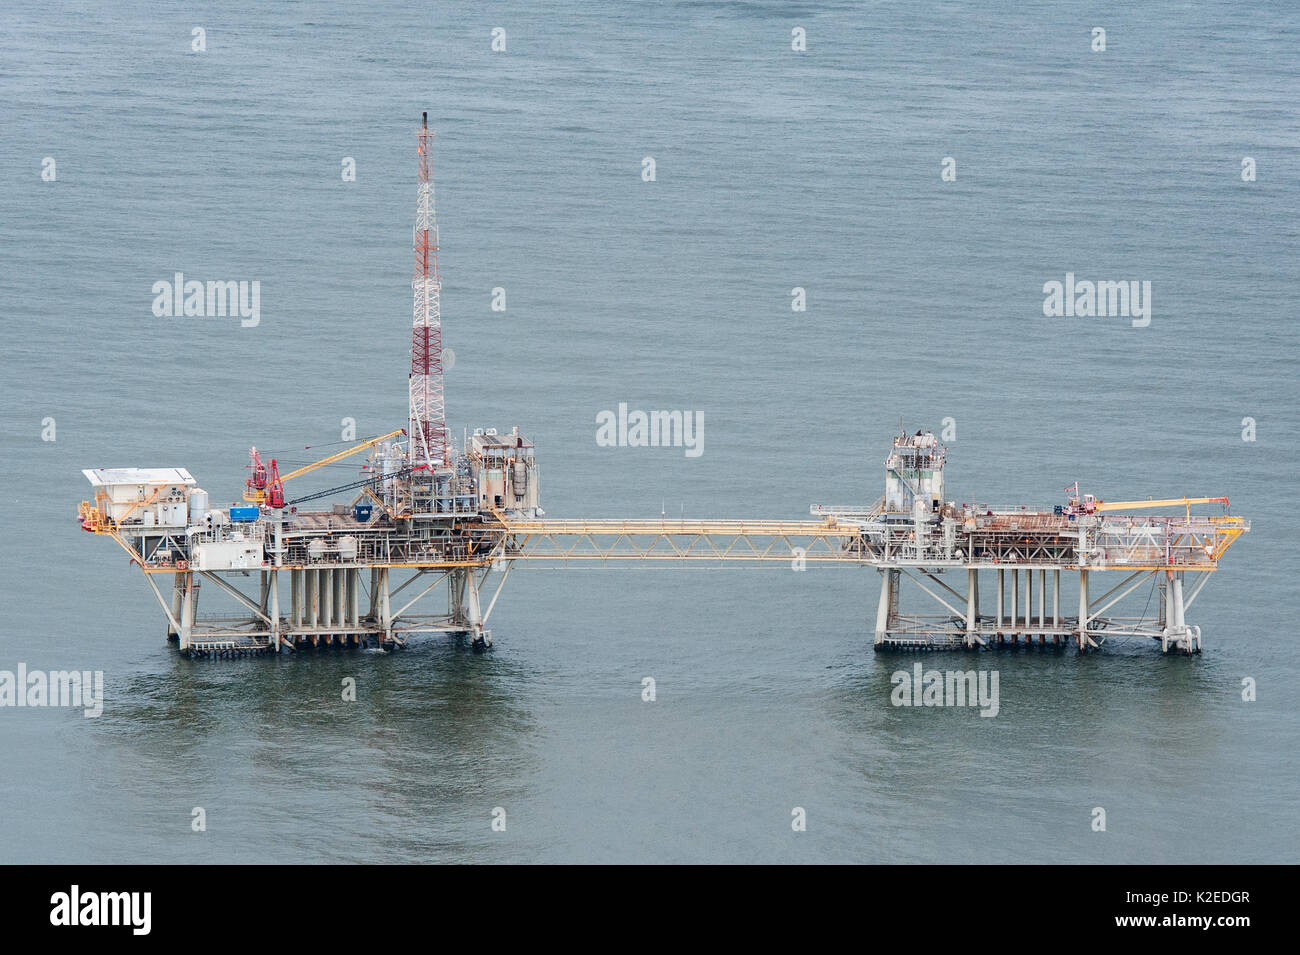 Aerial view of oil rig drilling platform,  Louisiana, Gulf of Mexico, USA 2010 Stock Photo